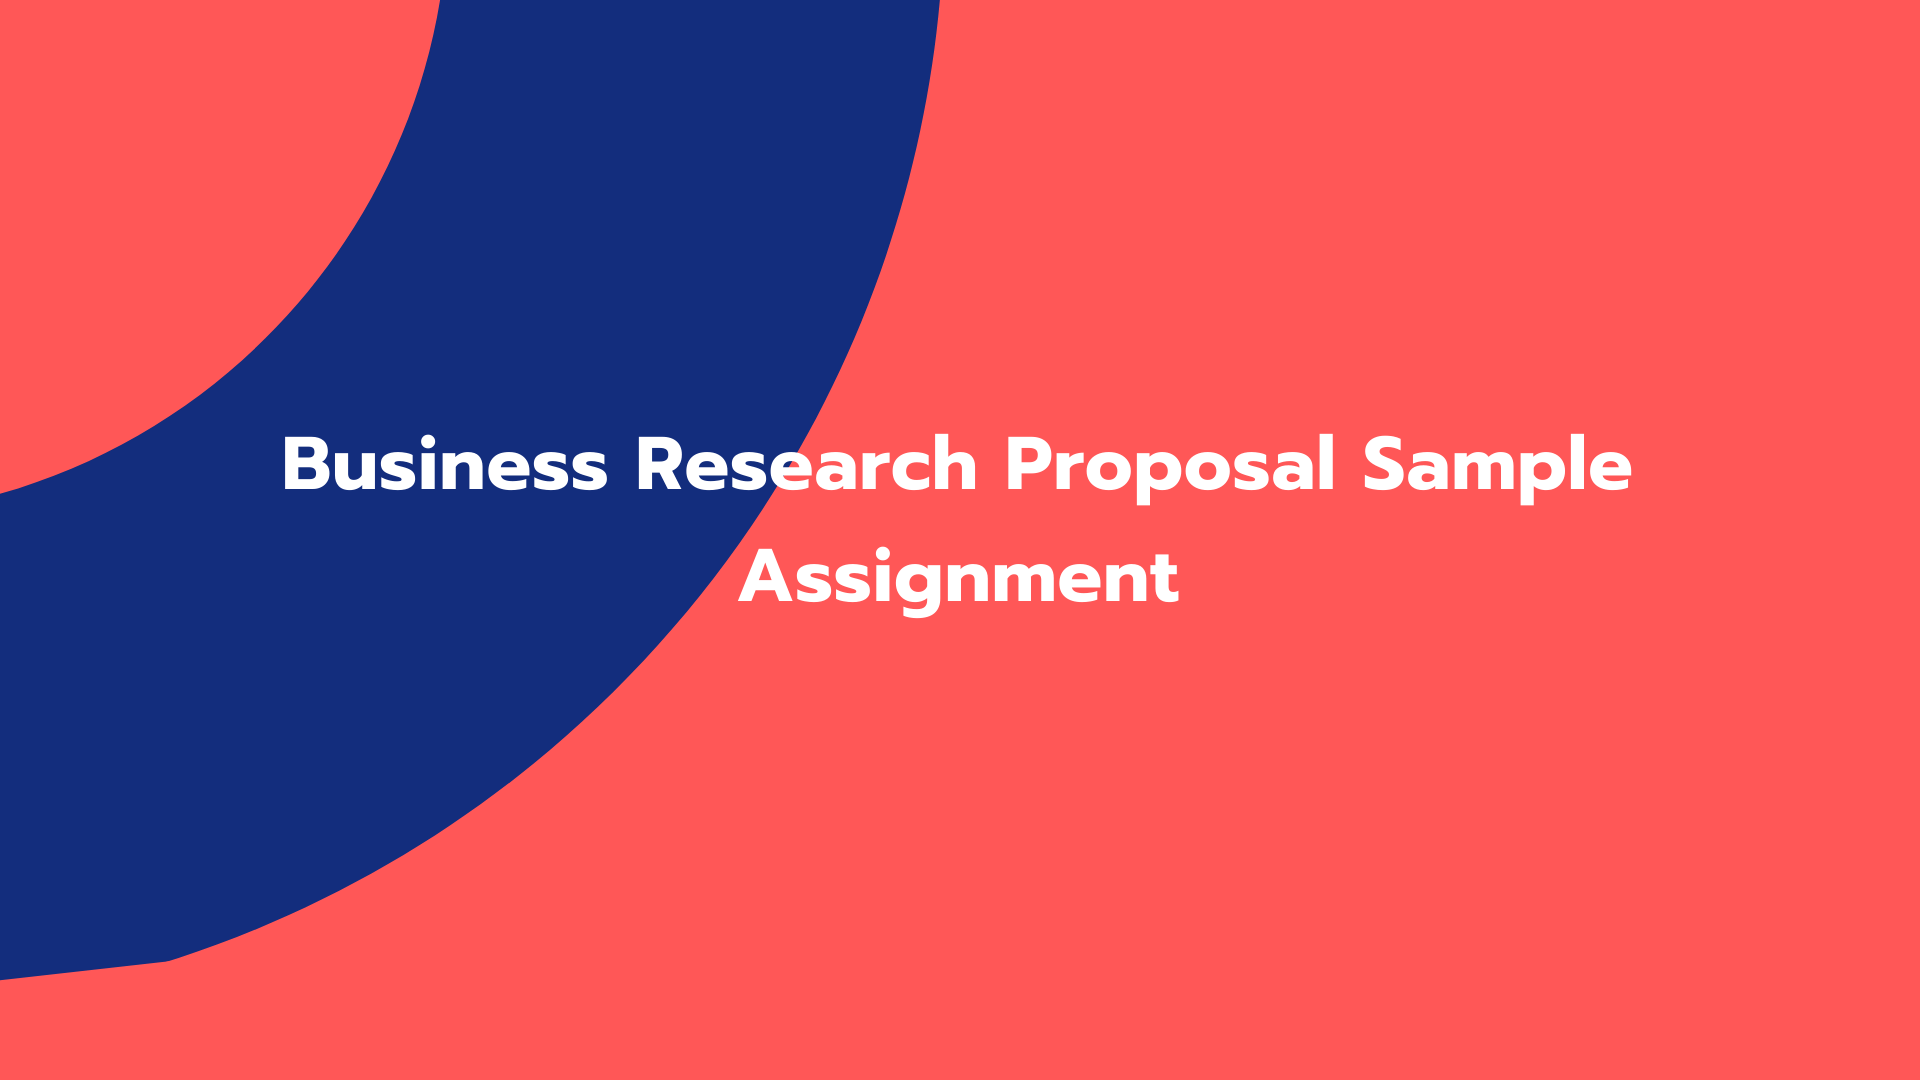 Business Research Proposal Sample Assignment